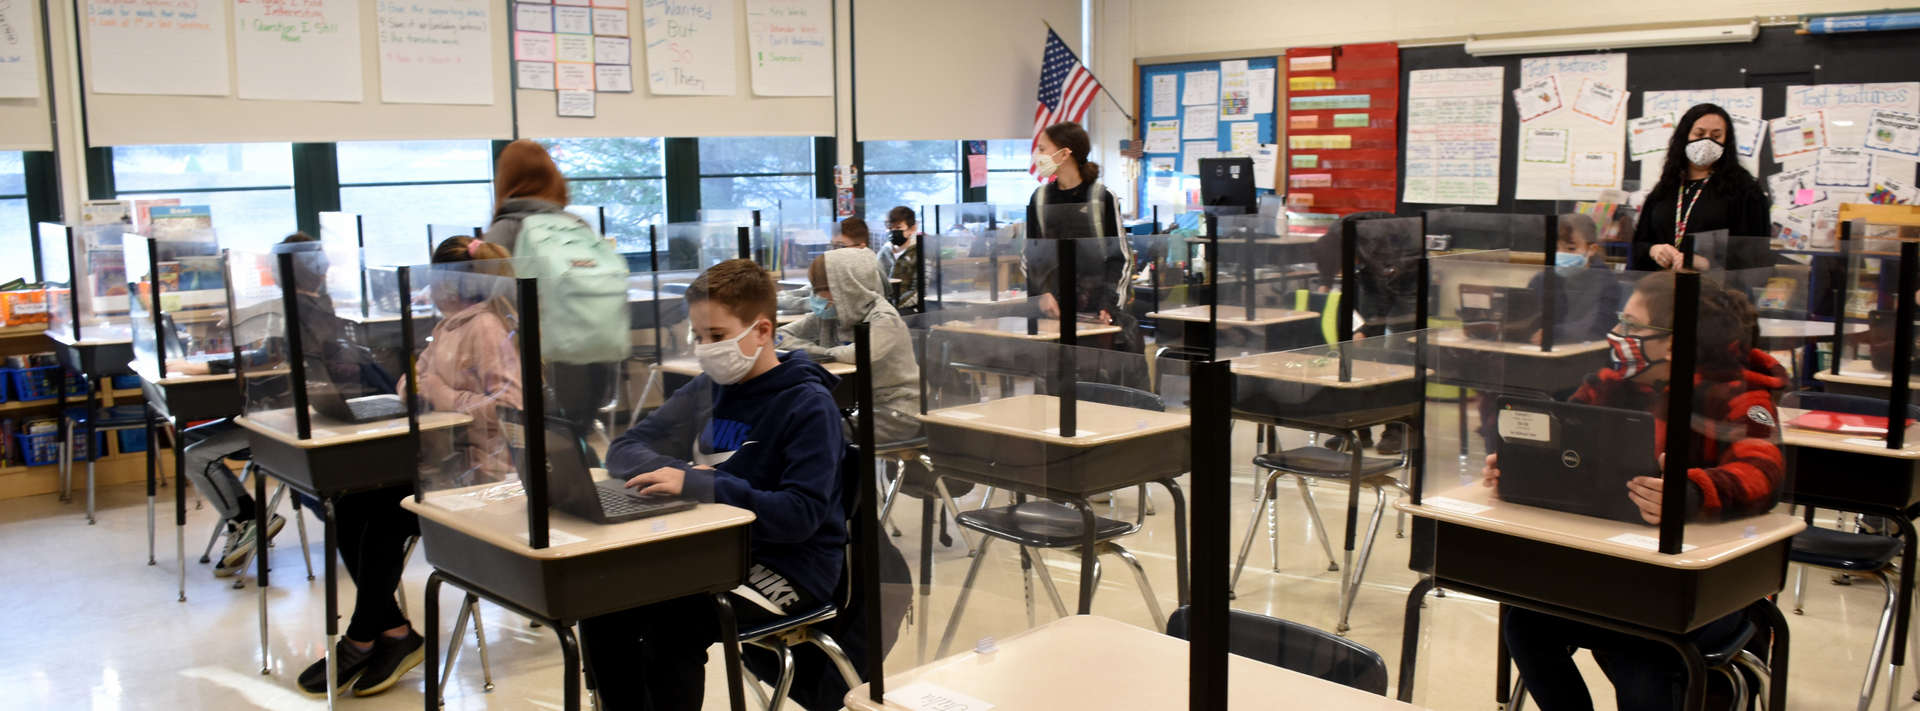 Students with masks sitting at desks with barriers